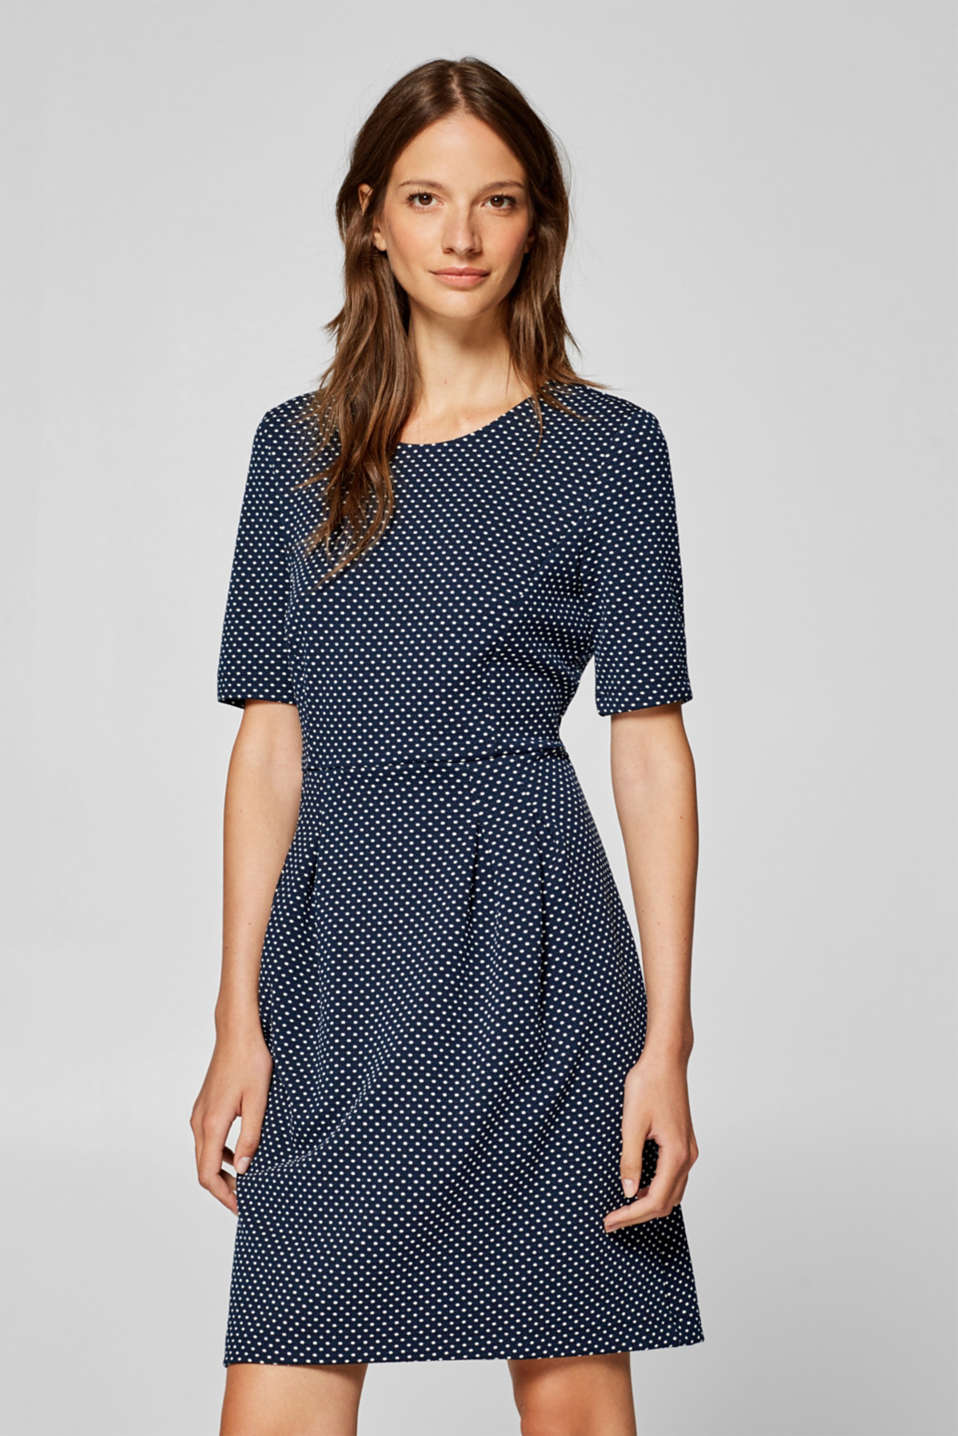 Esprit - Jersey stretch dress with jacquard polka dots